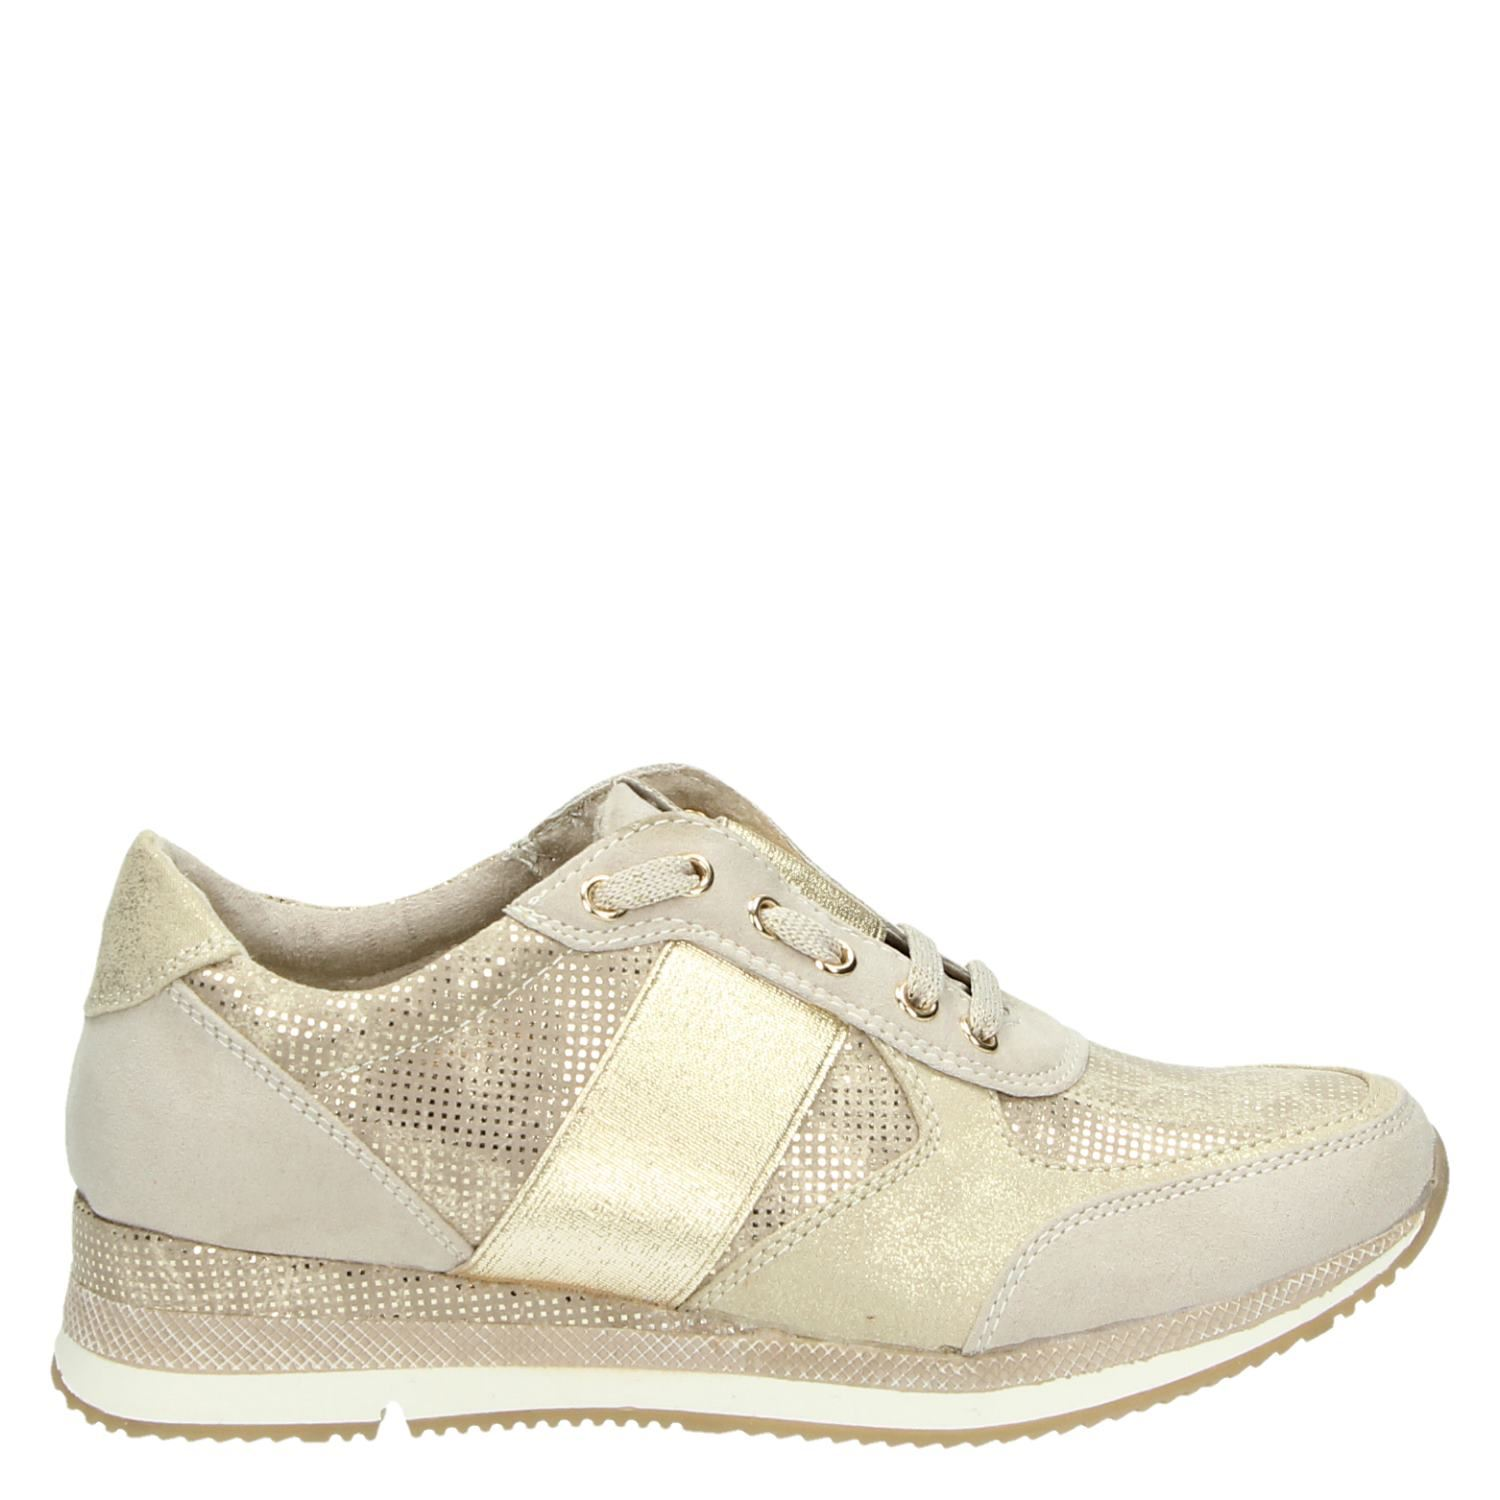 great look outlet store sale best deals on Marco Tozzi dames lage sneakers beige